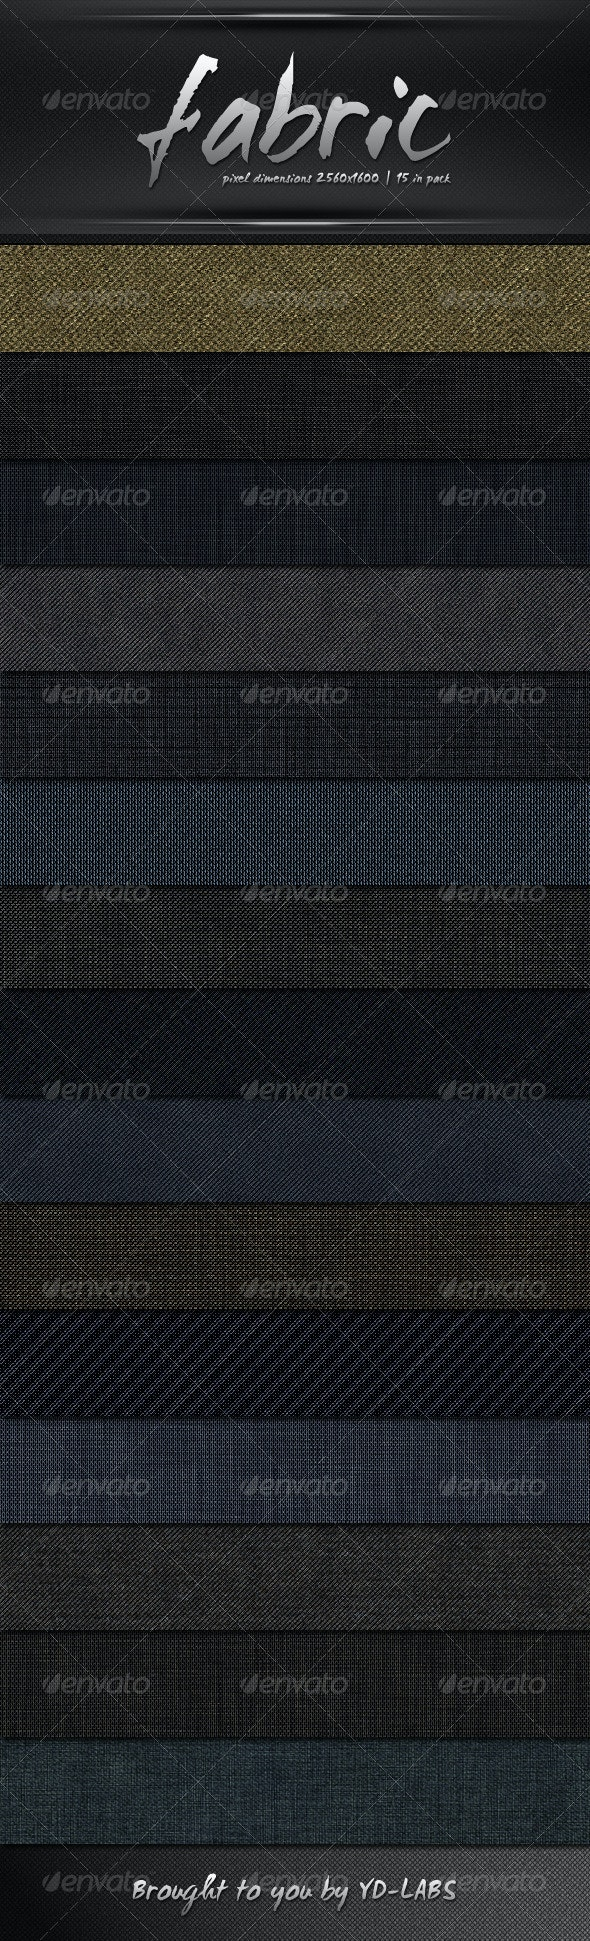 Fabric Pack 1 - Fabric Textures